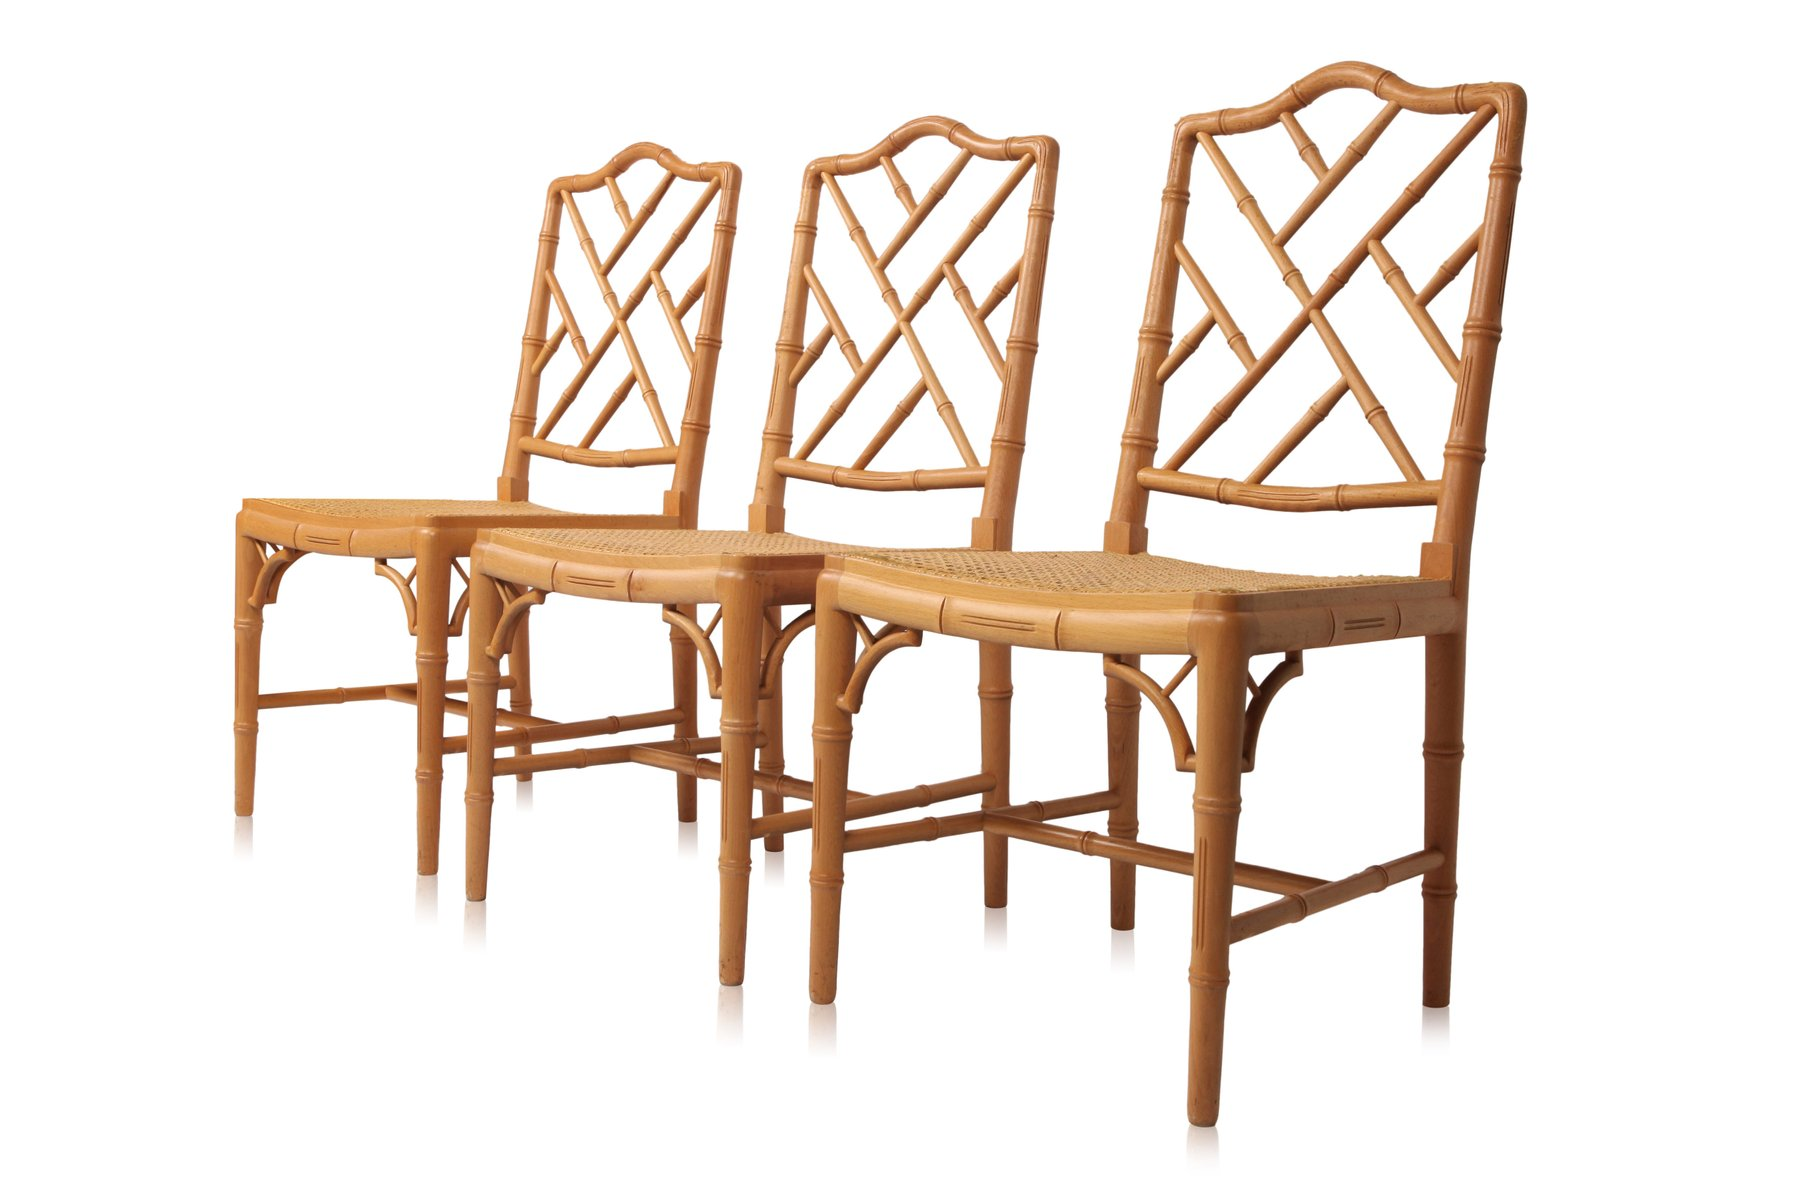 French bamboo dining chairs 1980s set of 6 for sale at for 1980s chair